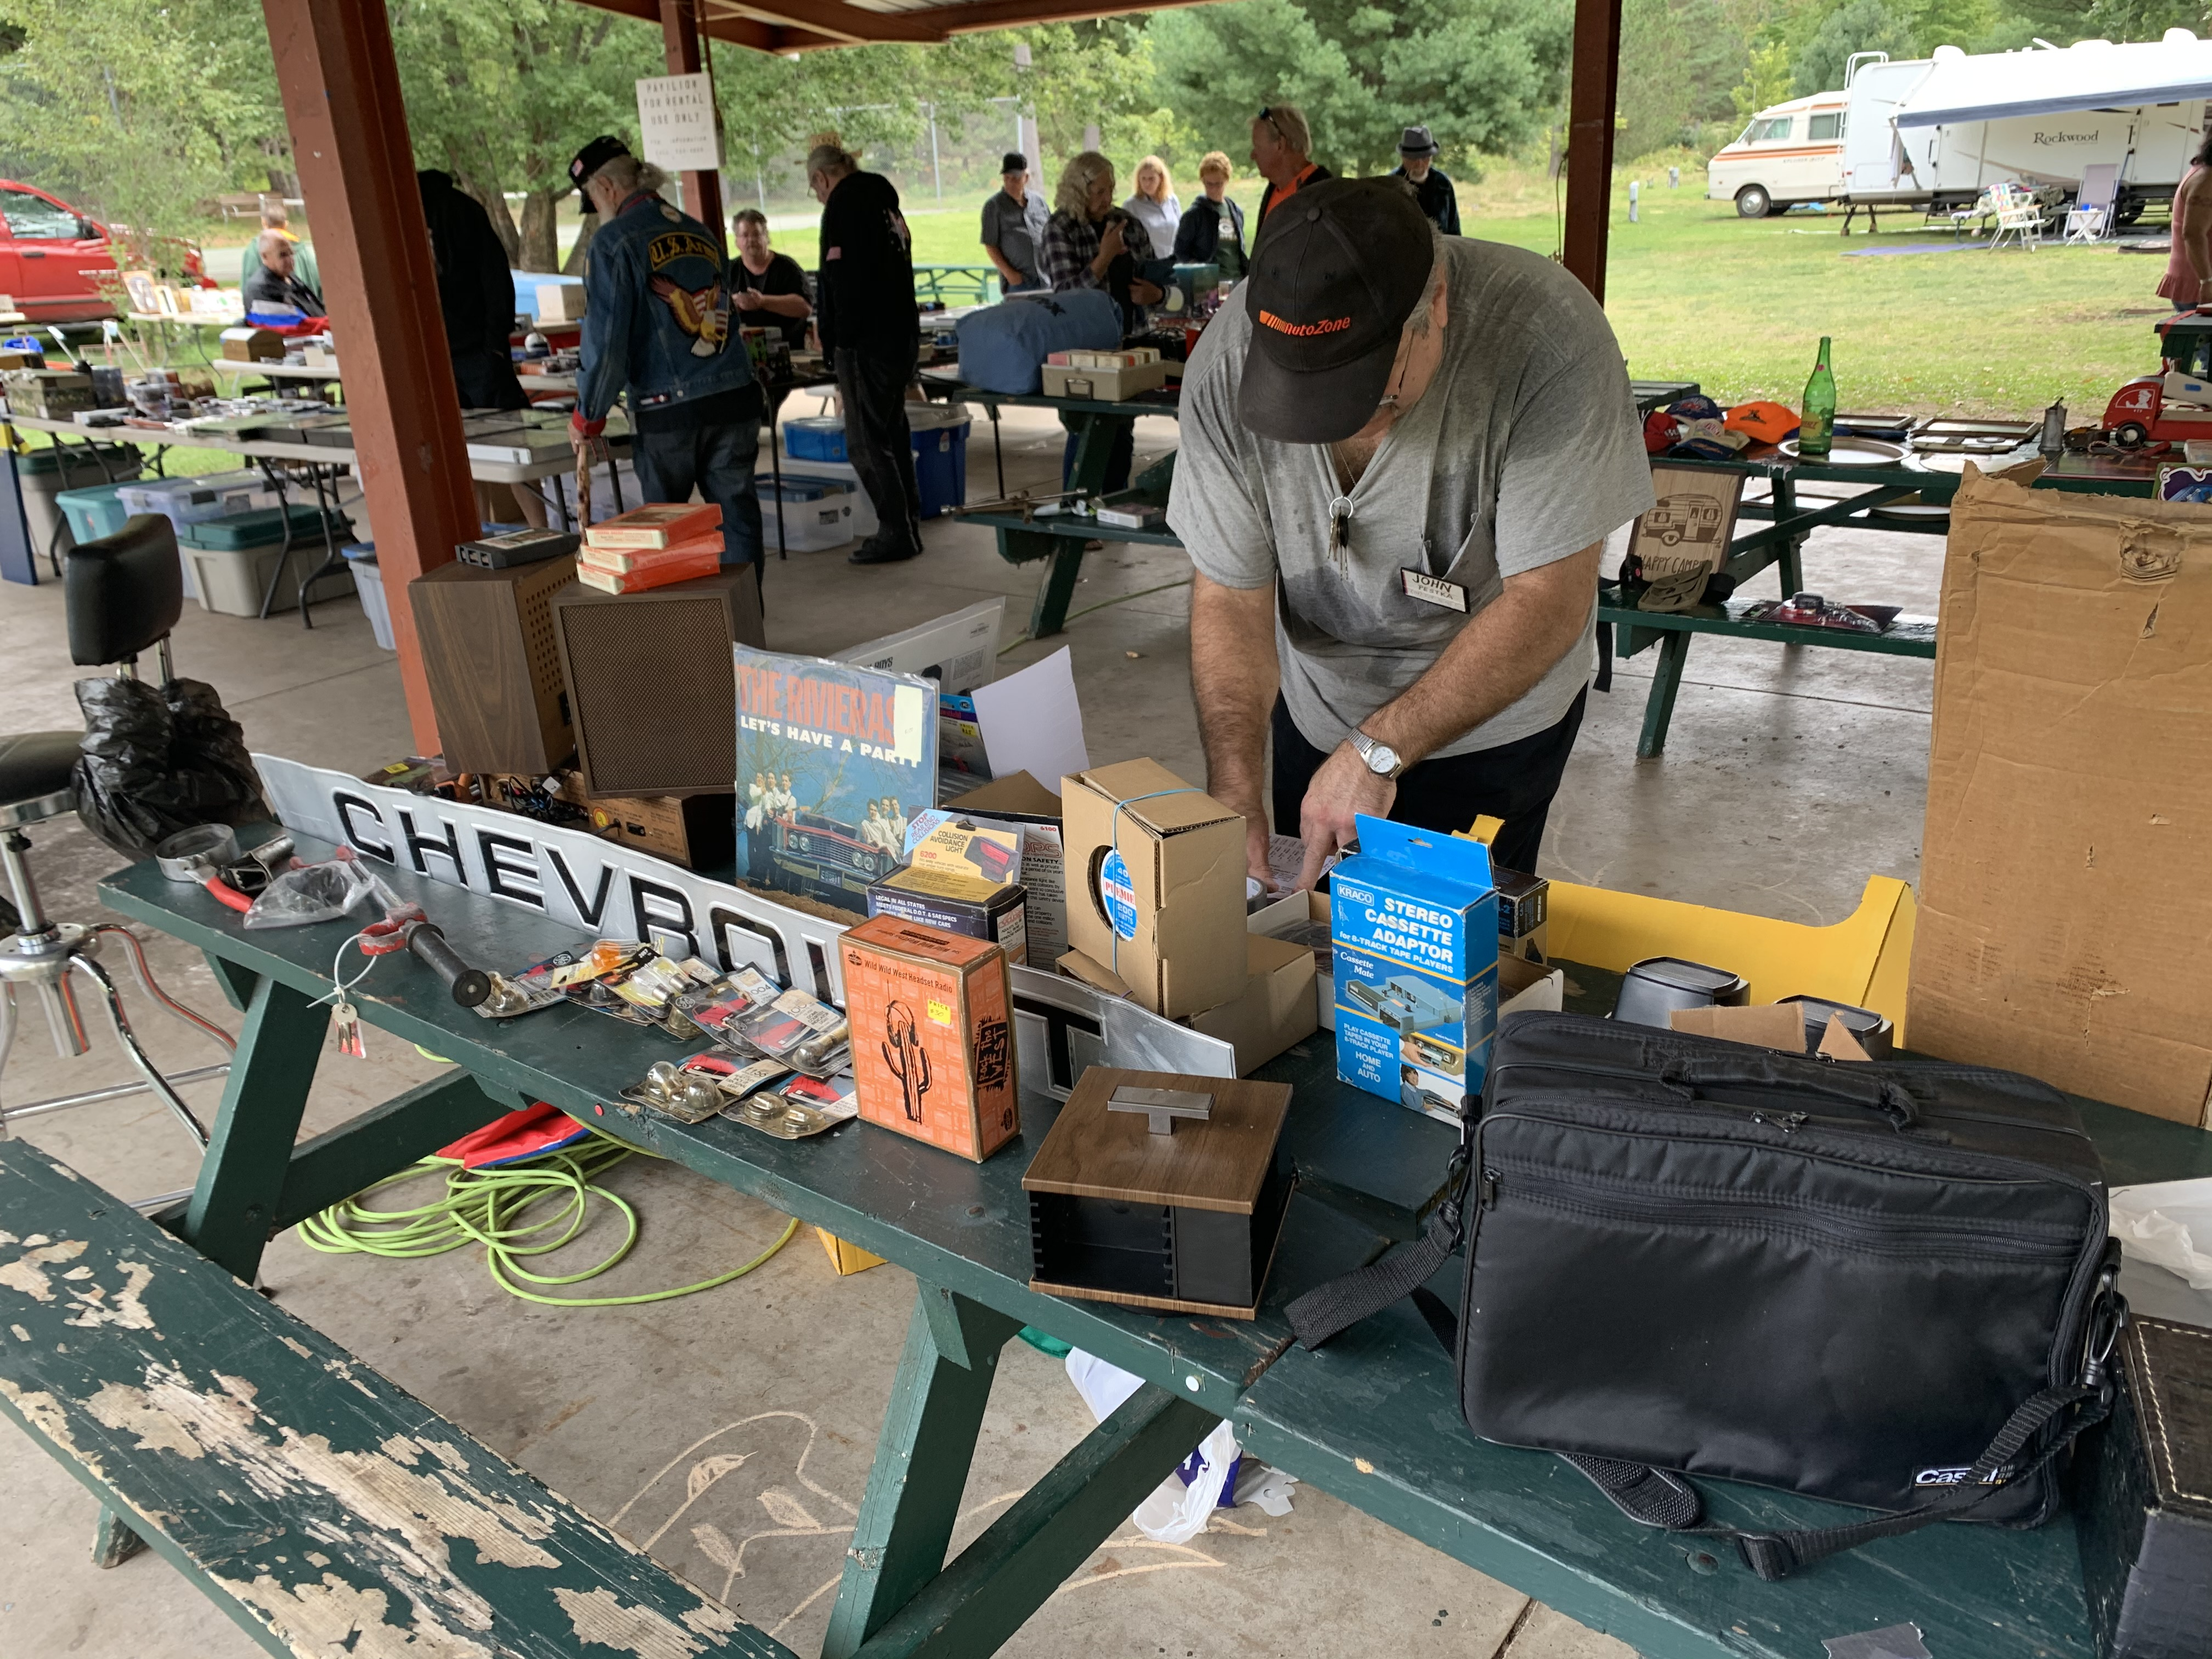 John Pestka gets his table ready during a swap meet that took place as part of the car show at Shawano Lake County Park on Sept. 12.Luke Reimer | NEW Media